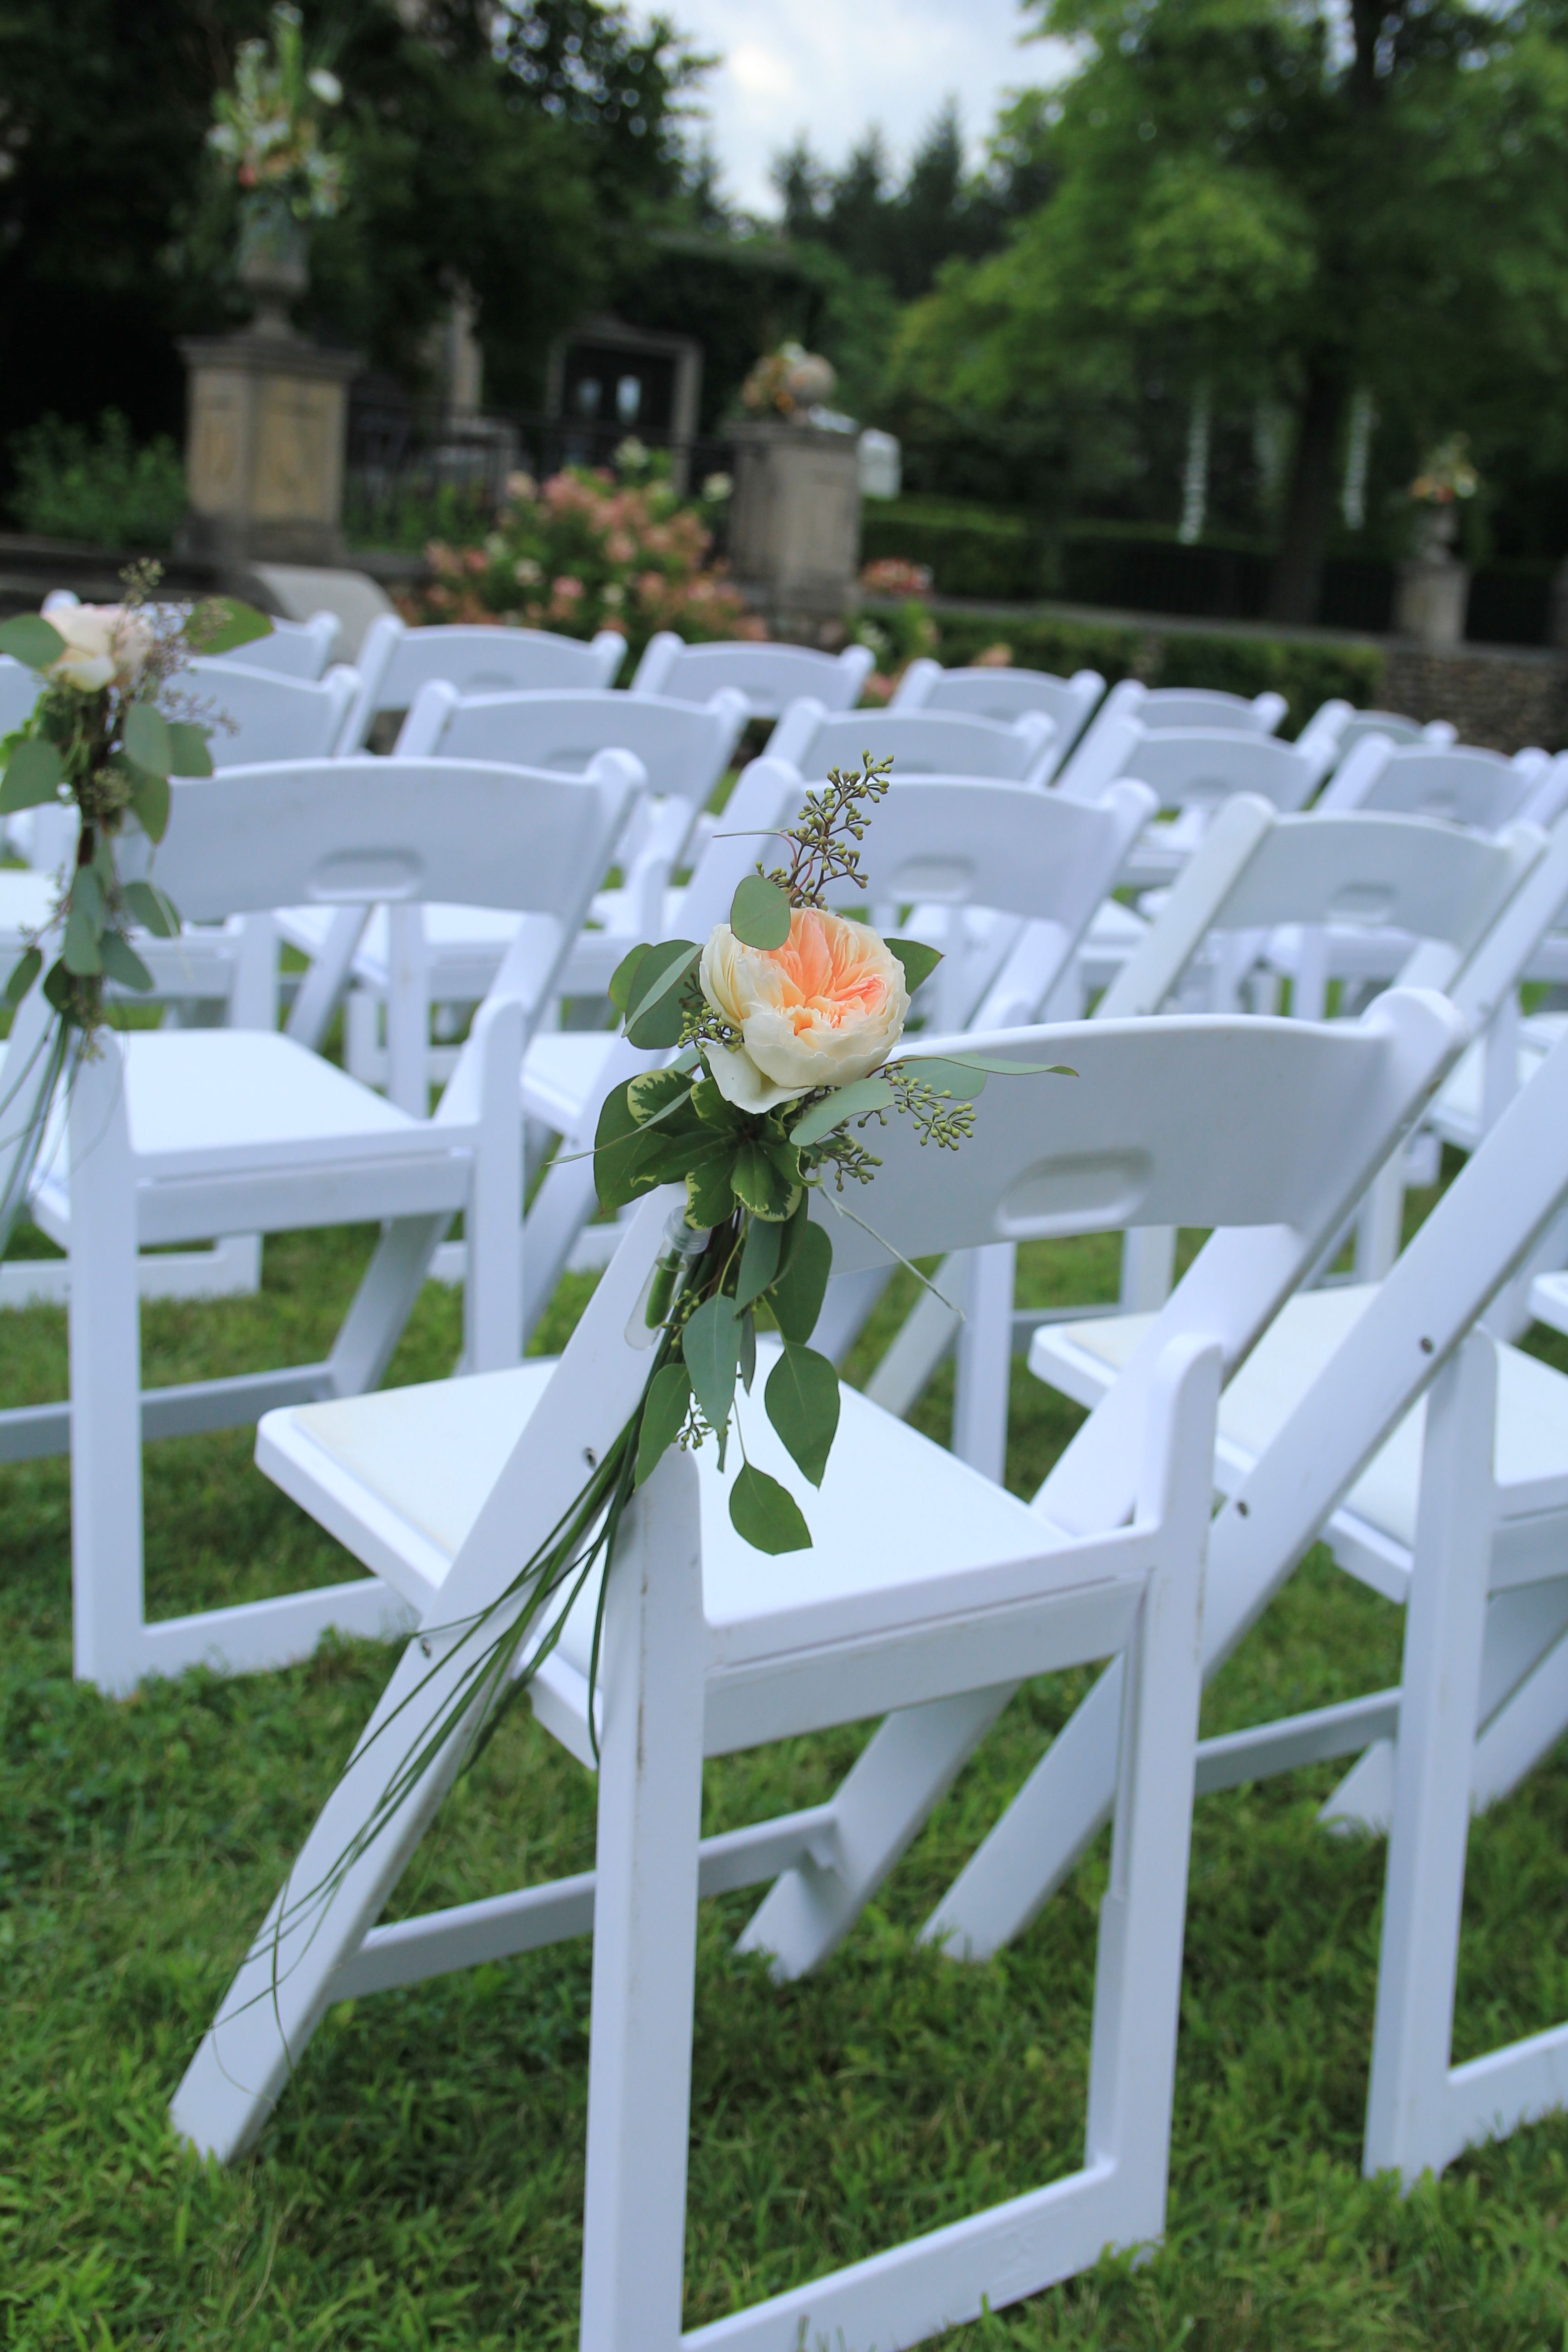 gorgeous simple decoration for a garden chair at an outdoor wedding ceremony.